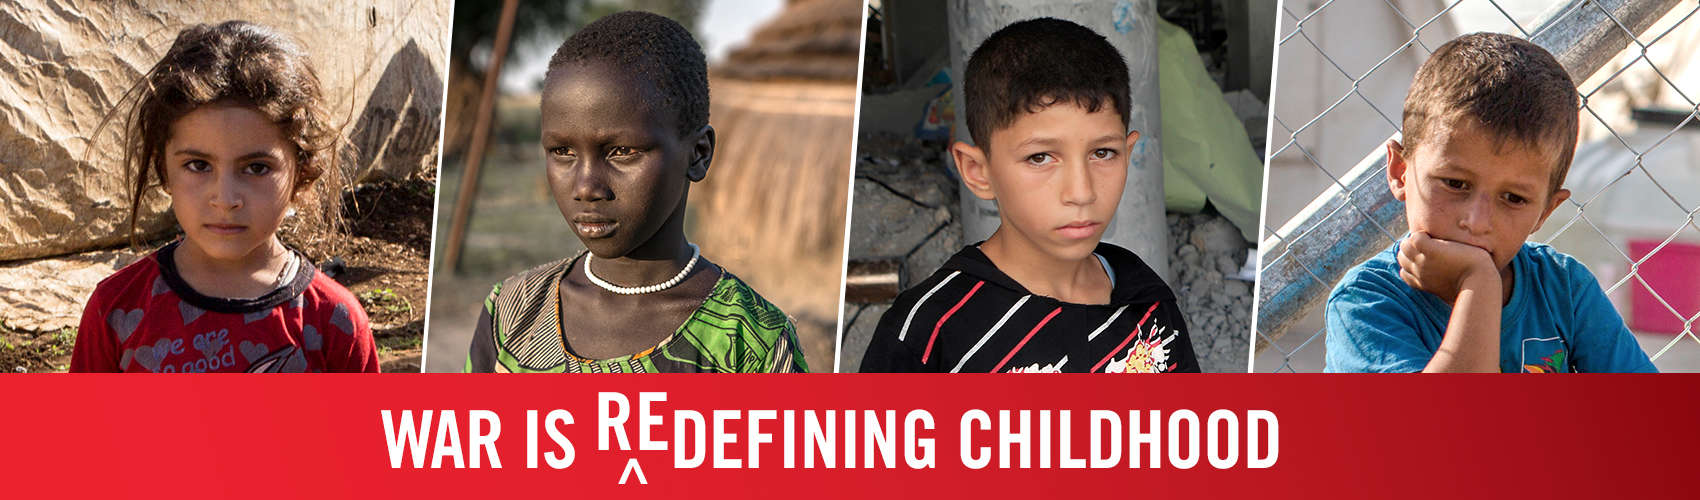 Globally, nearly 1 in 6 children are experiencing childhoods affected by conflict. Save the Children is working to provide essentials to these children. Photo credit: Save the Children, 2017.